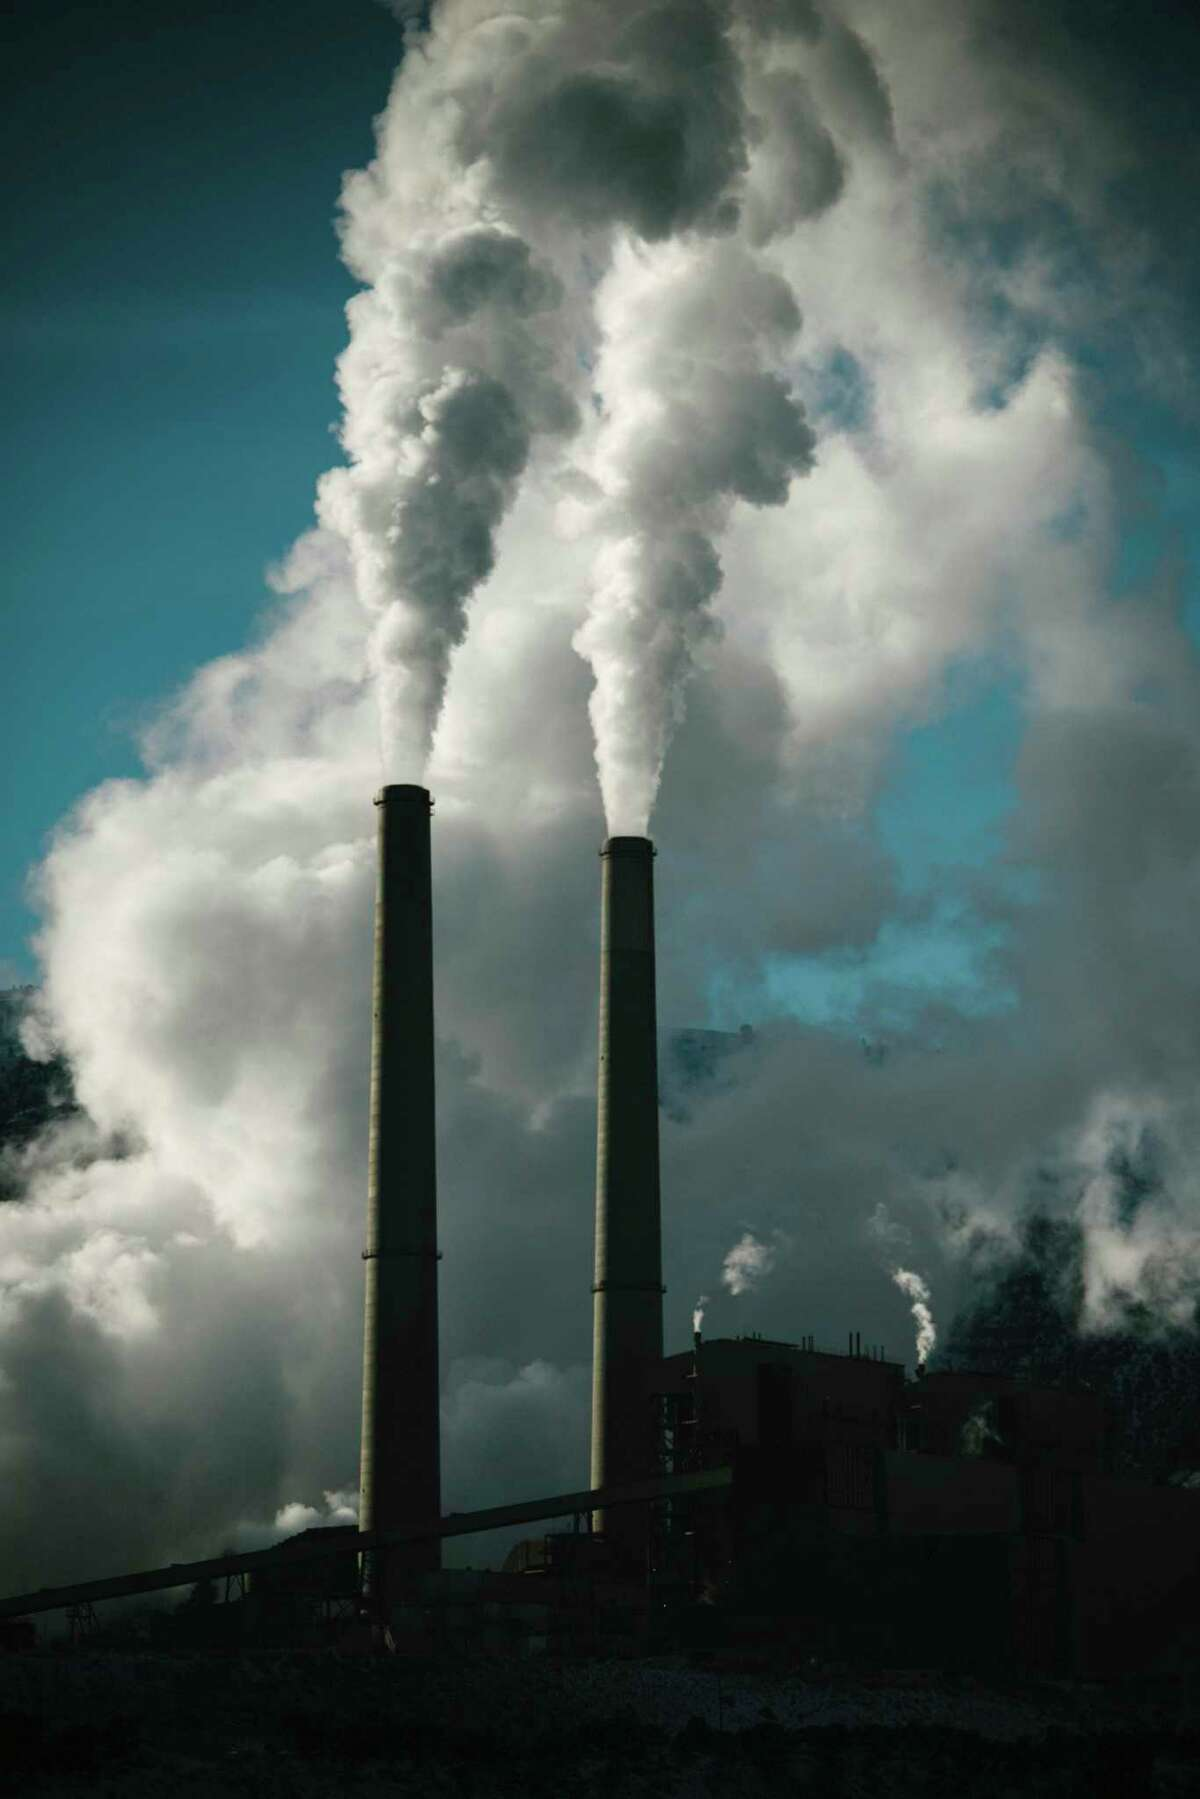 Reaching net-zero carbon emissions will require staggering ambition, the author writes.